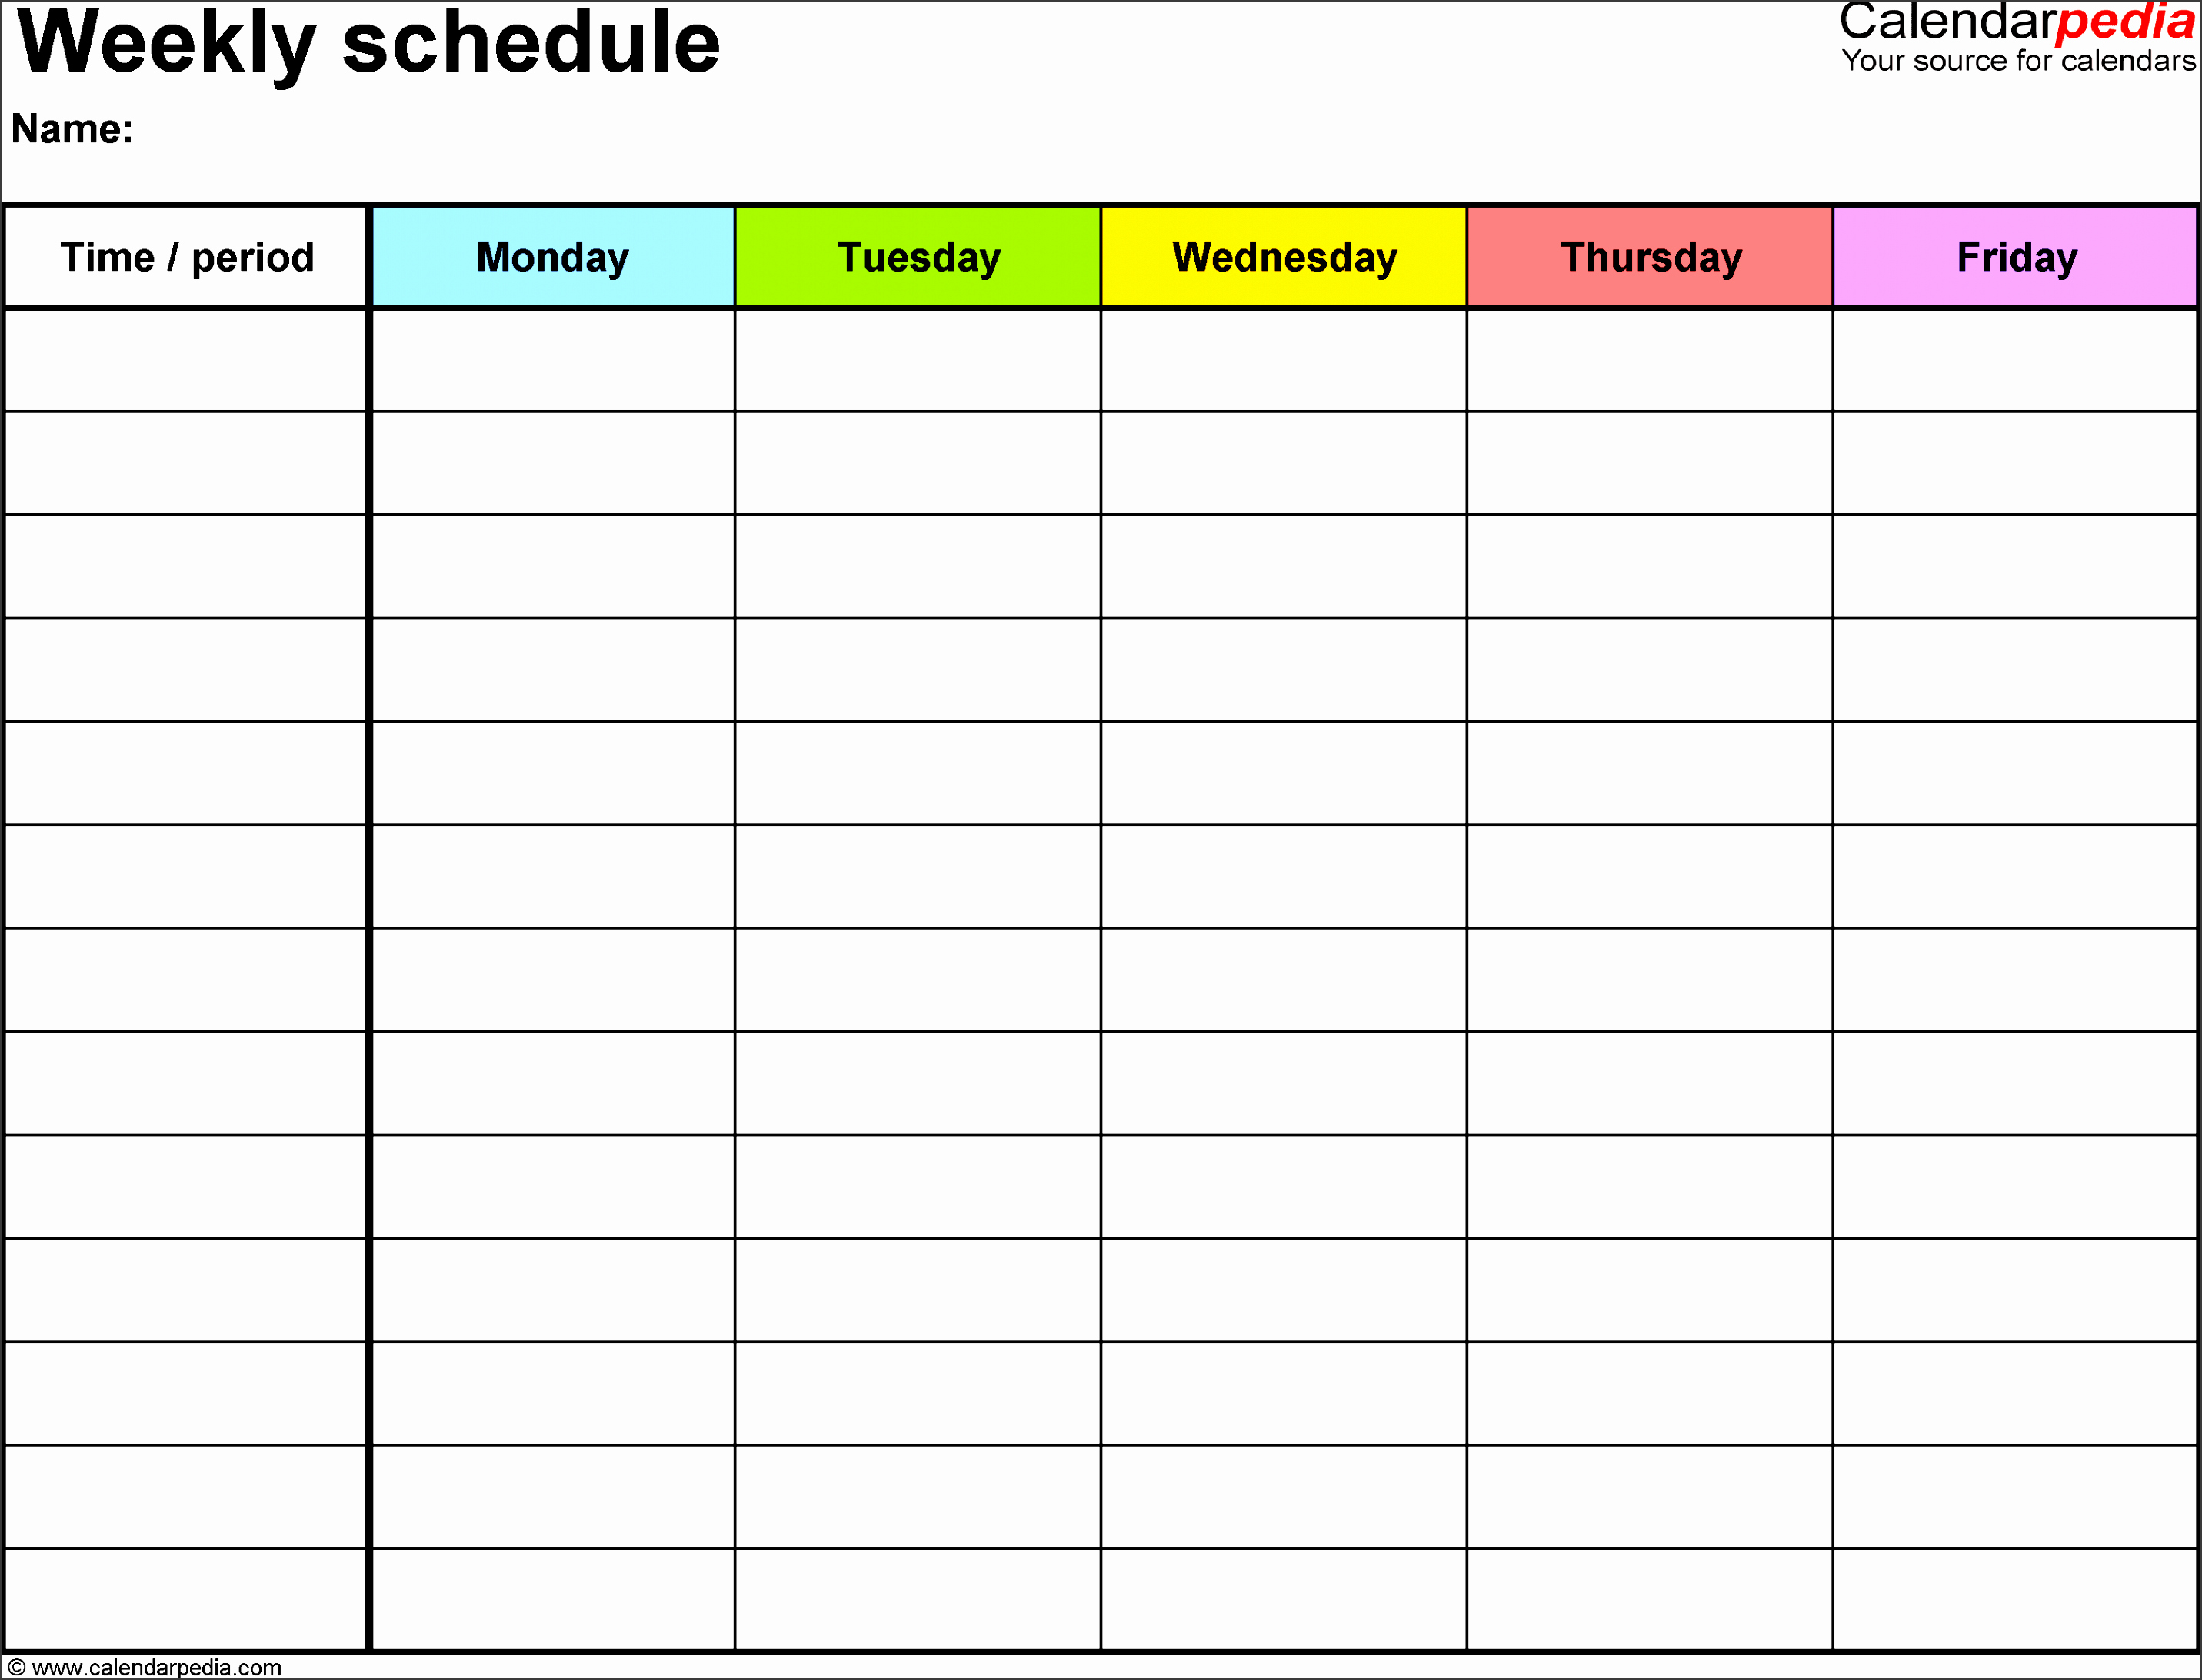 Weekly Meal Planner Template Excel Fresh 6 How to Make Monthly Meal Planner In Excel